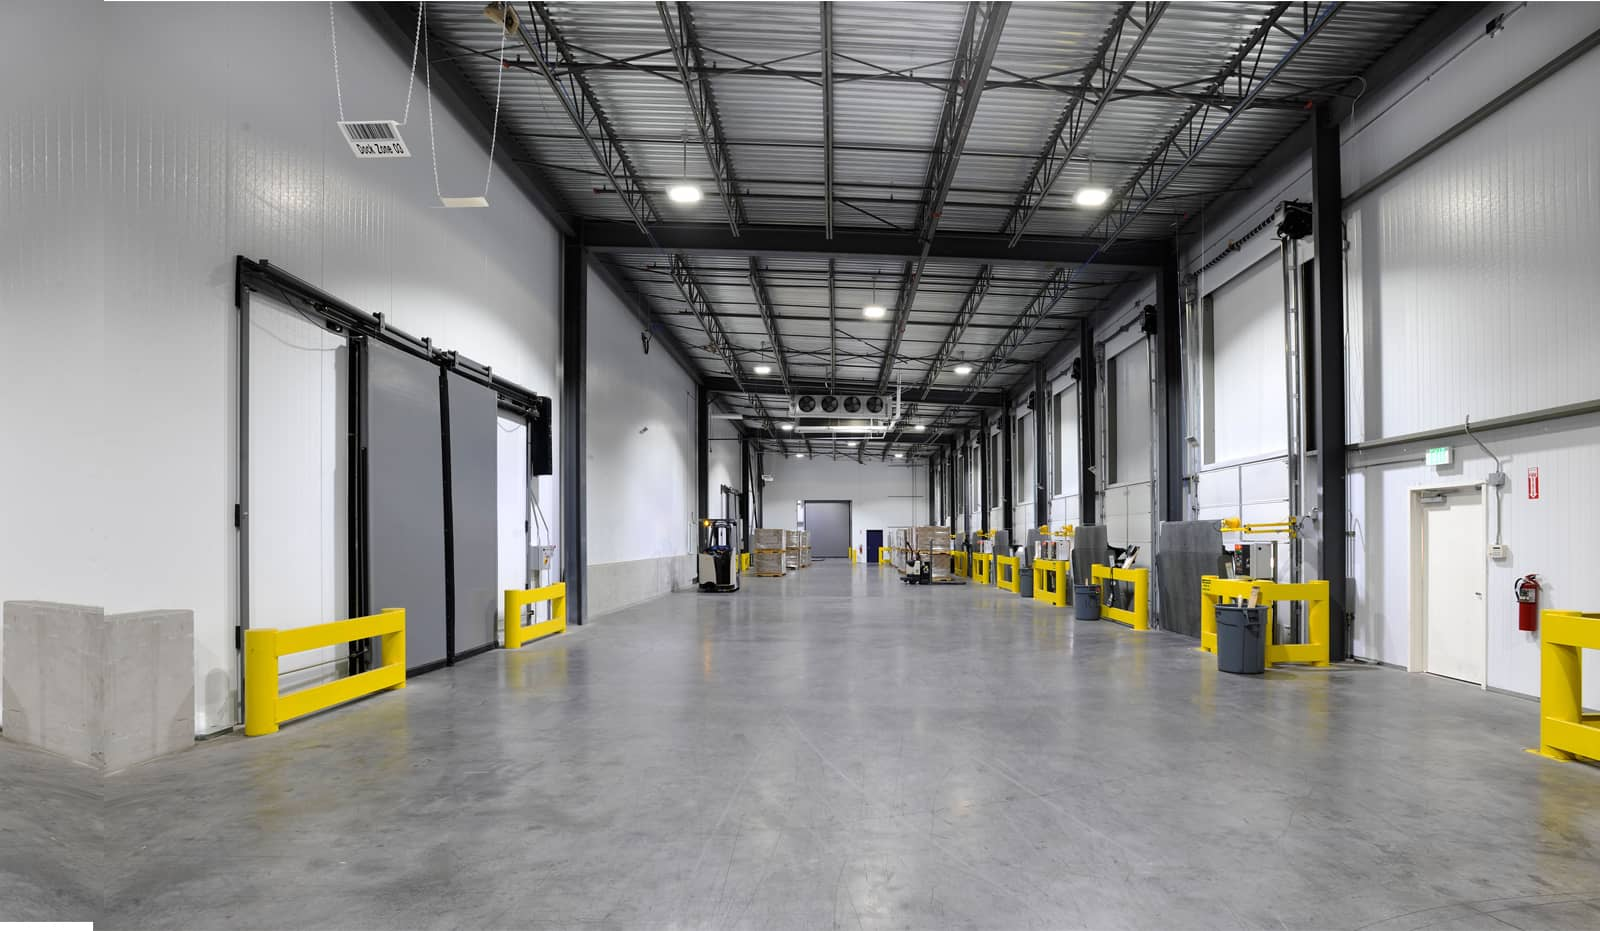 Warehouse lighting installed by Constellation Lighting